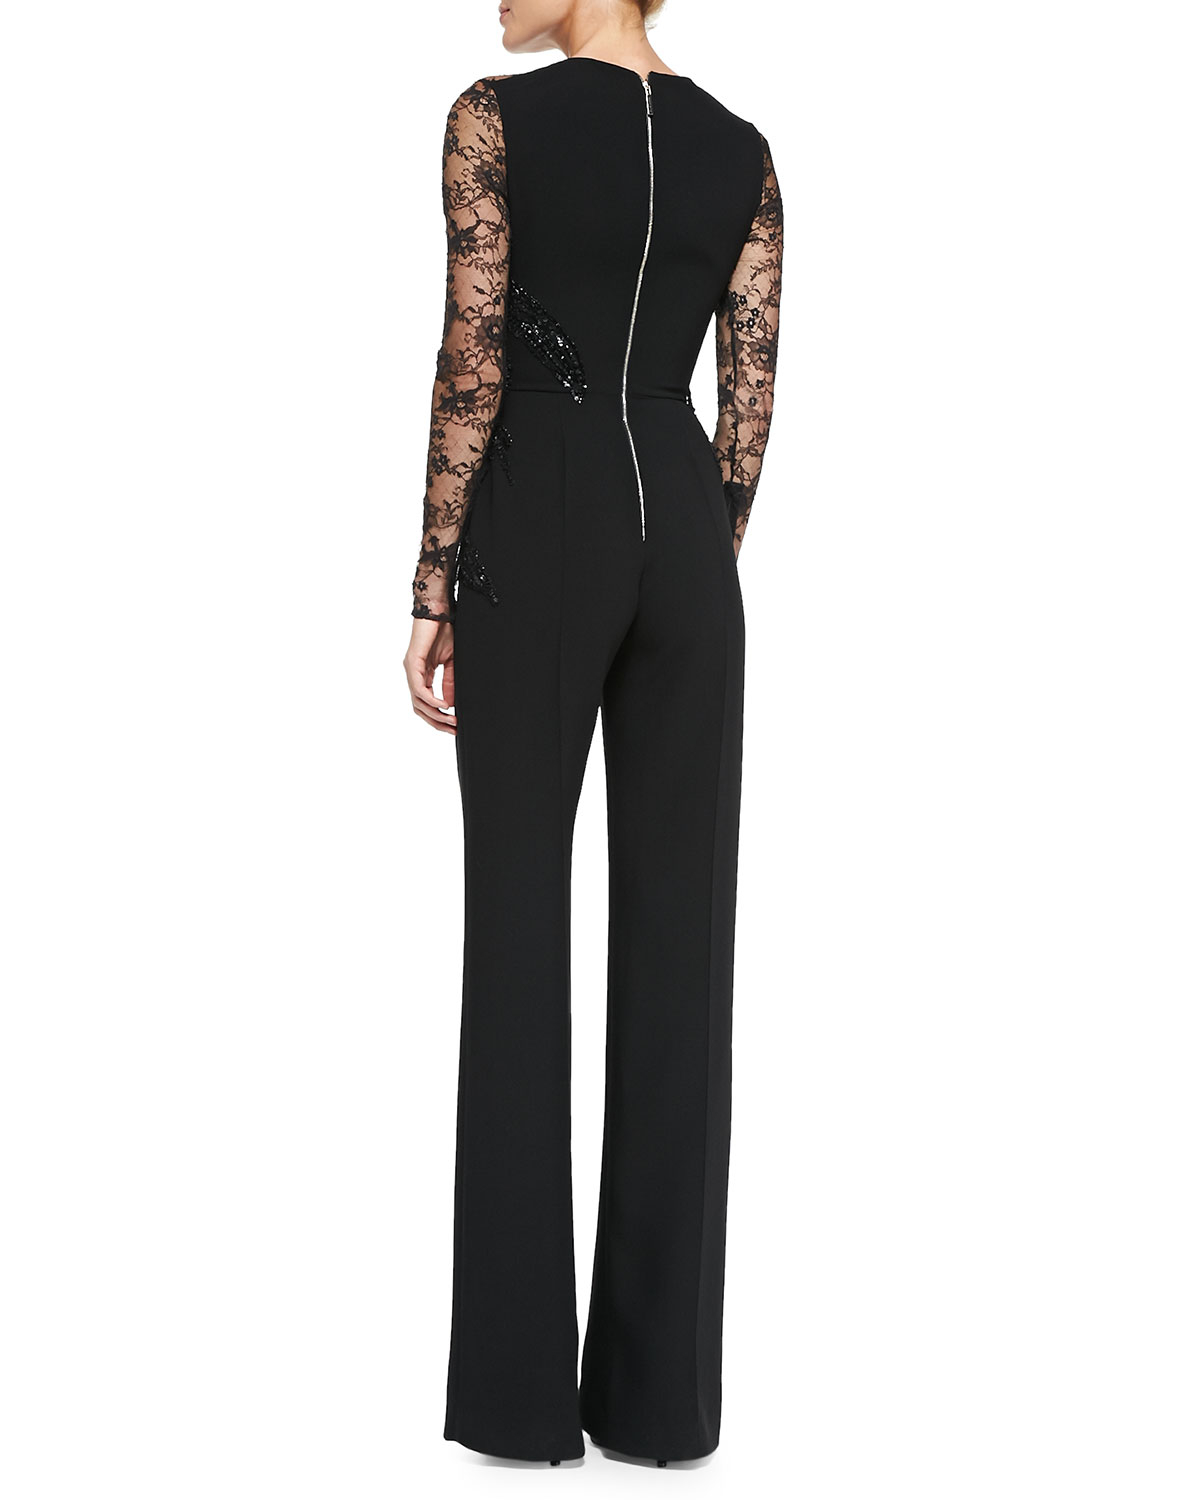 7d28d048575 Lyst - Elie Saab Long-sleeve Embroidered Lace Jumpsuit in Black